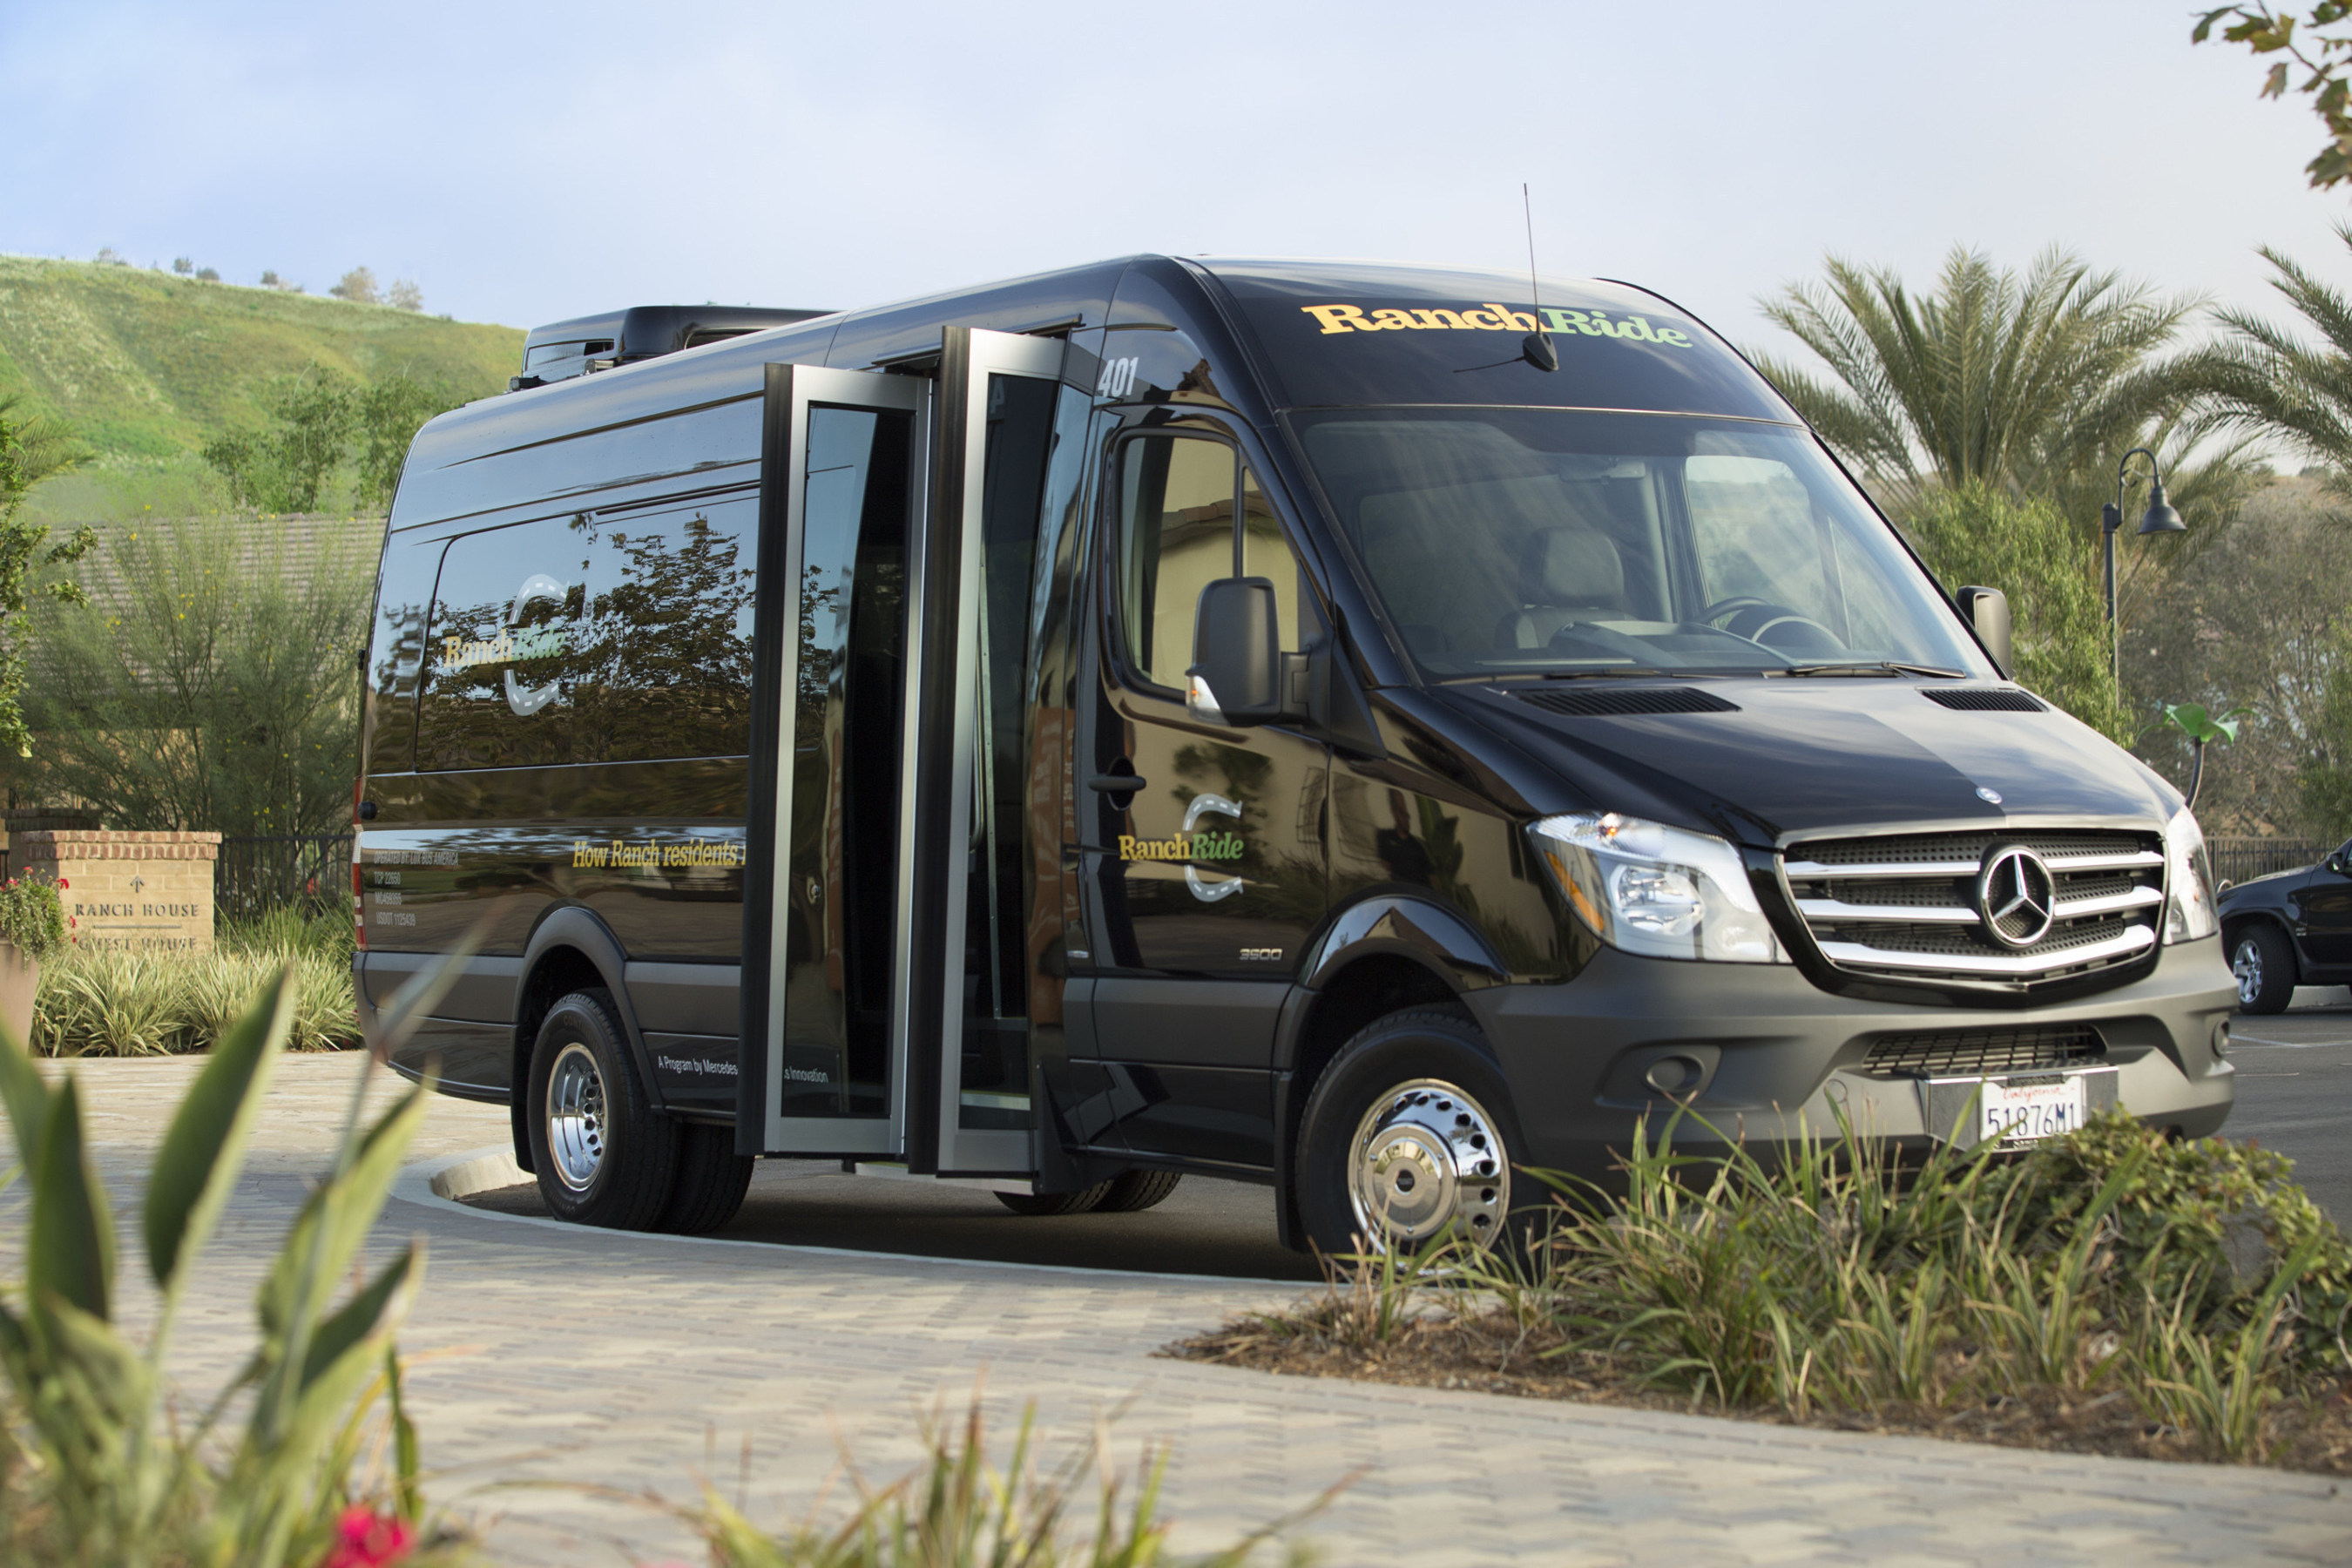 Mercedes benz and rancho mission viejo launch ranchride to for Mercedes benz mission viejo